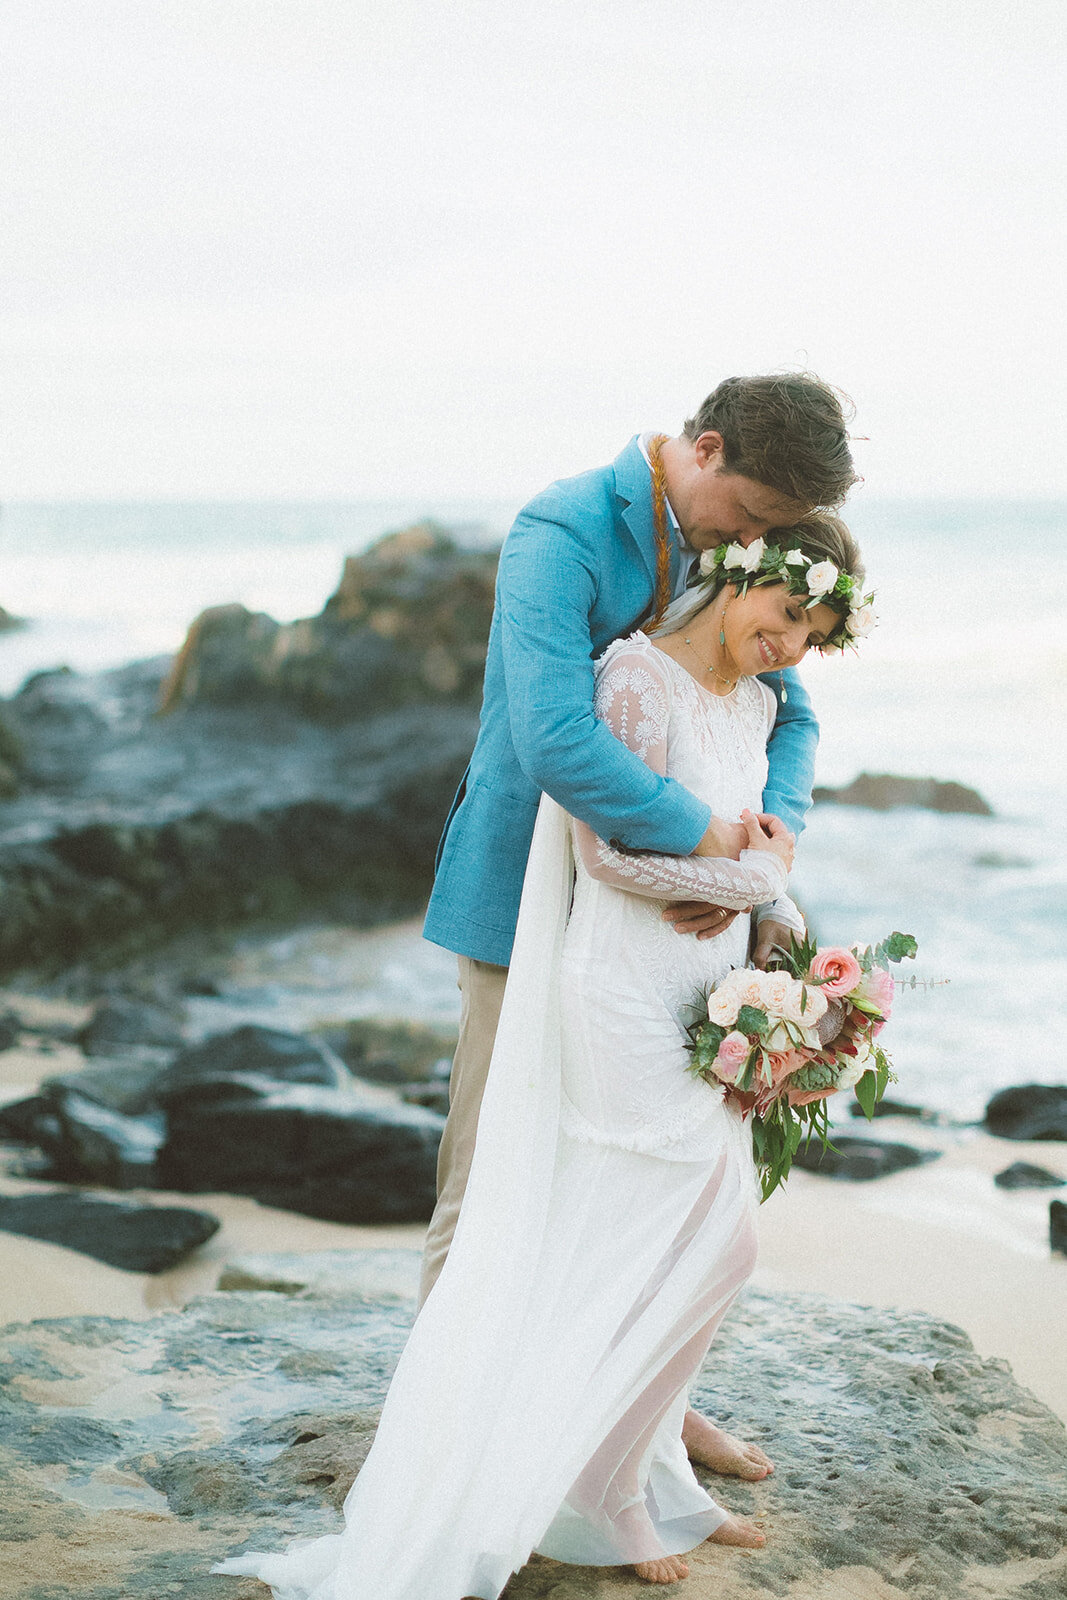 Maui wedding photographer20181126_0040.jpg